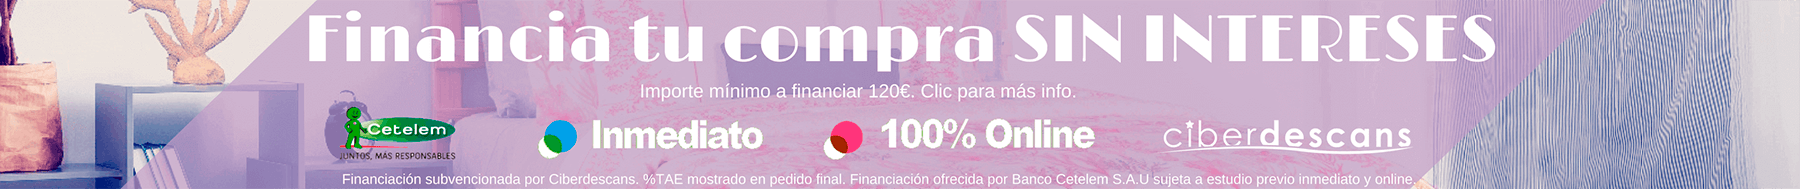 Financiacion-Ciberdescans